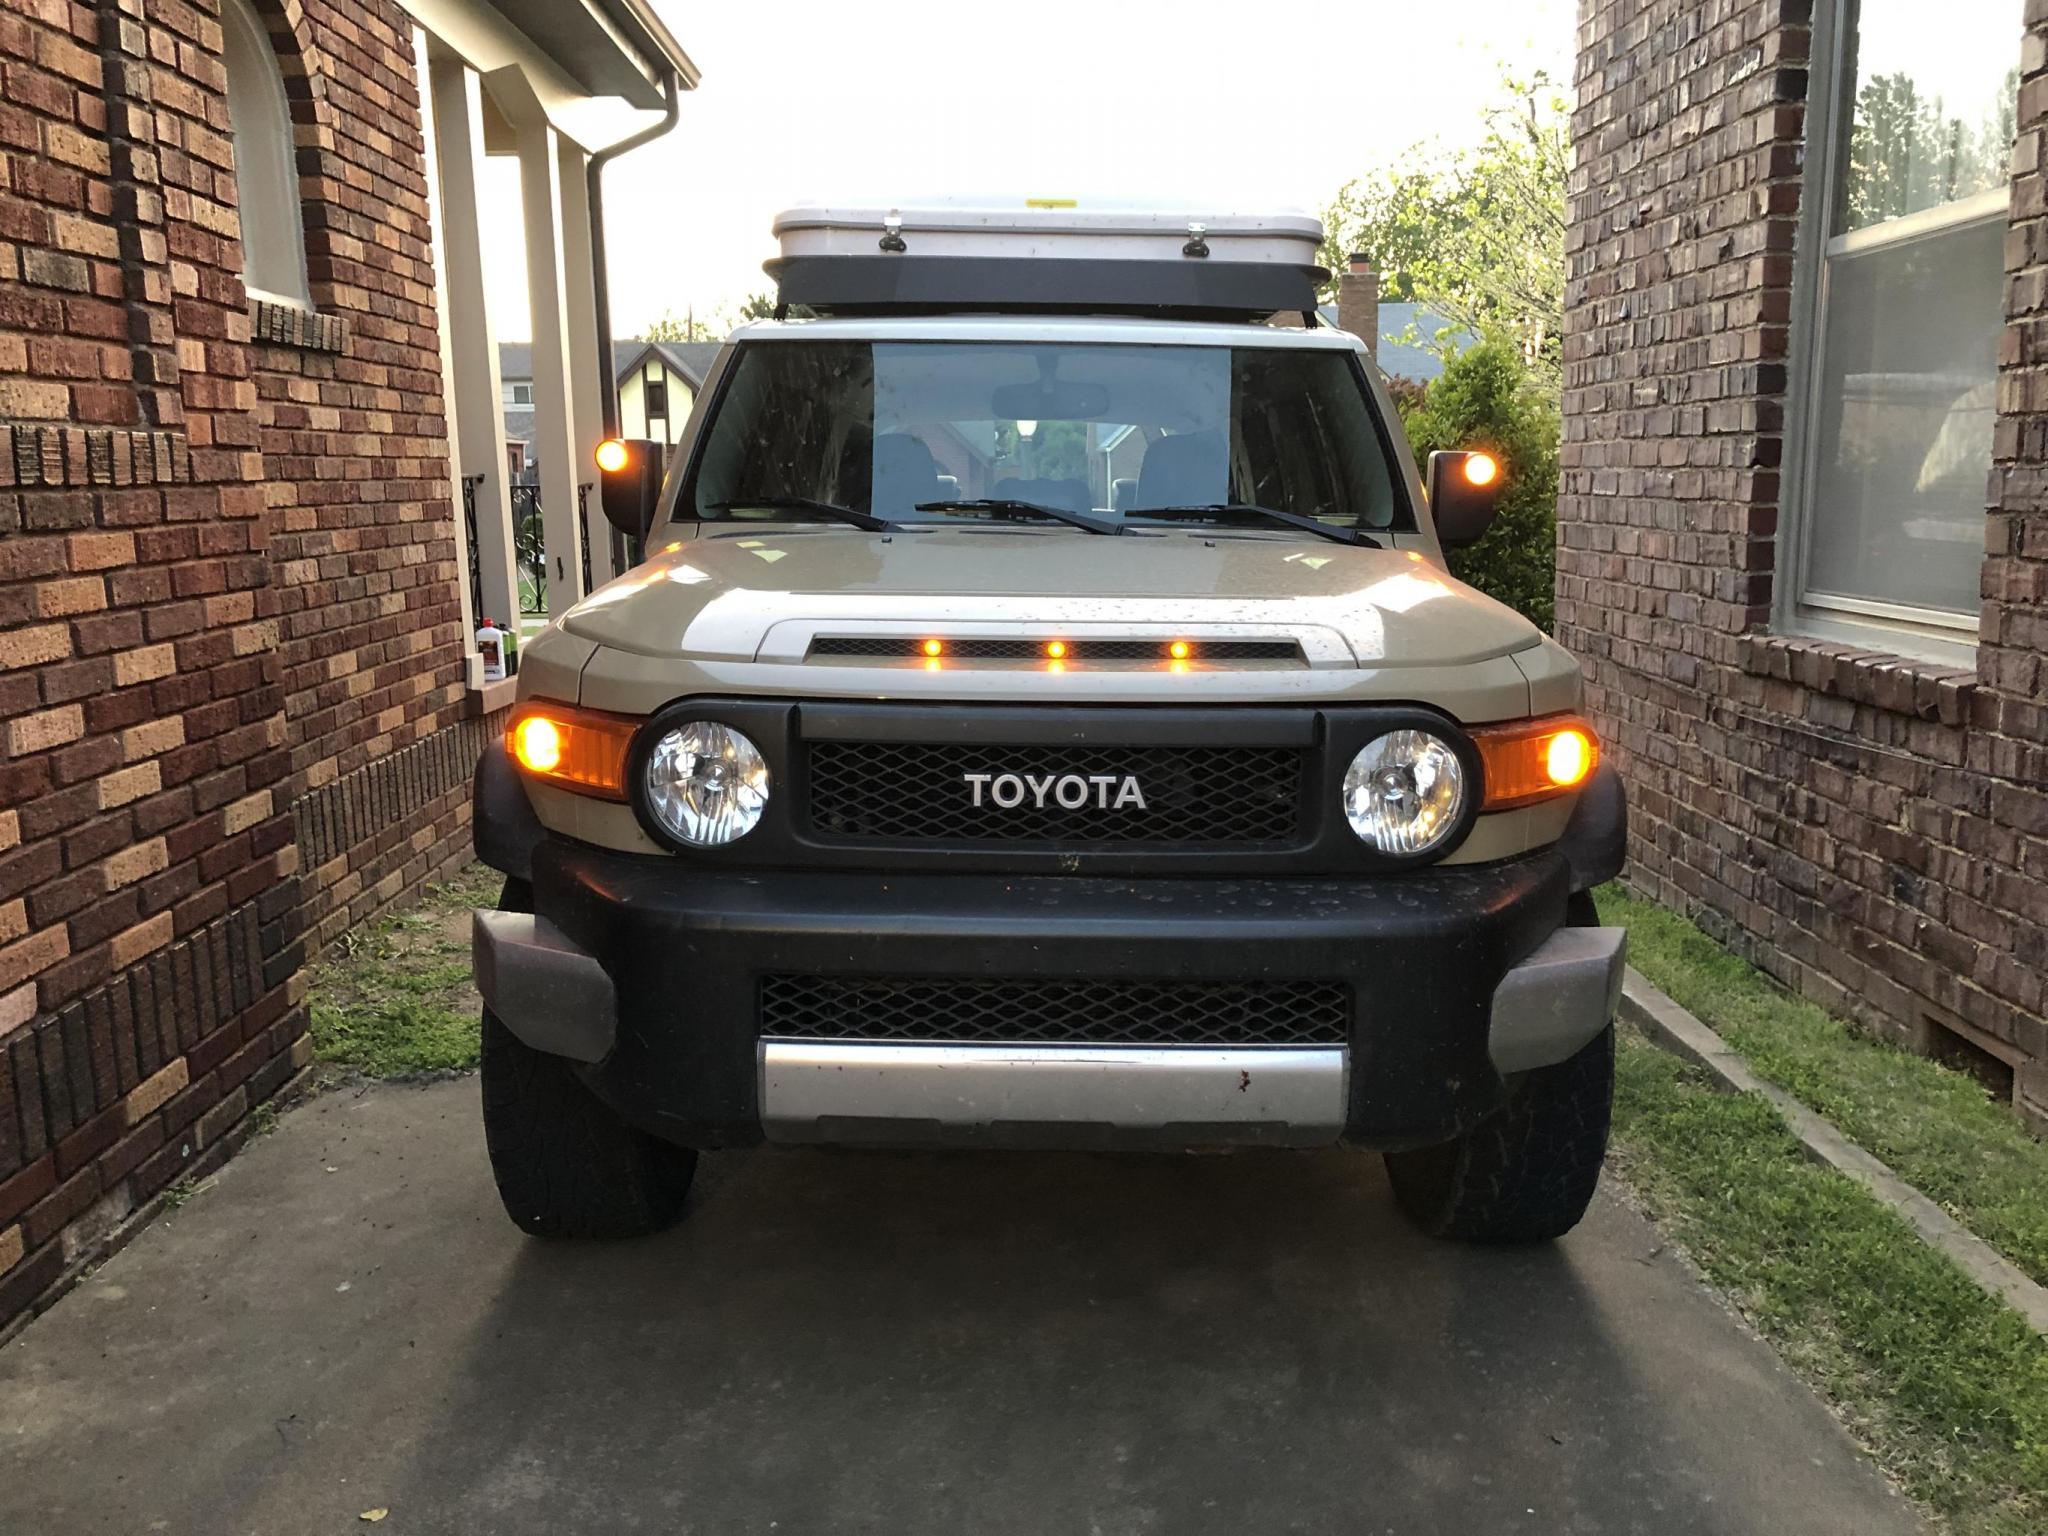 What did you do TO your FJ Cruiser TODAY?-c215f43b-ac13-4a4e-8880-896b1169a4fe_1556037426743.jpg